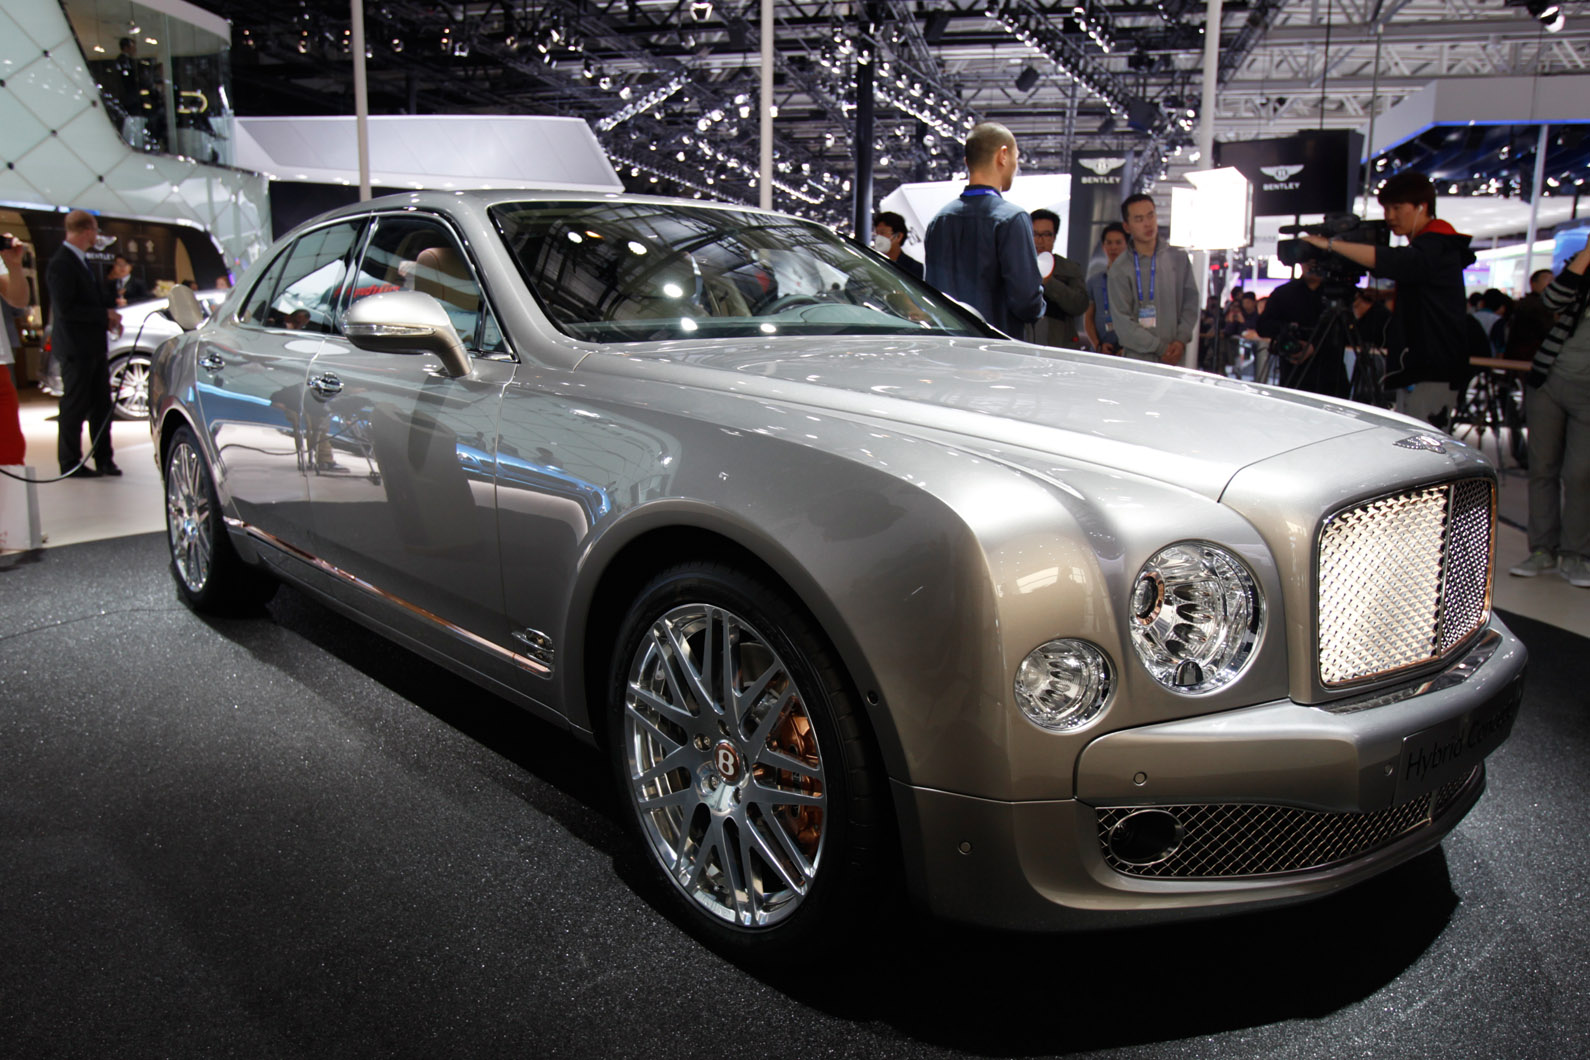 Beijing motor show 2014 report and gallery for What does a motor vehicle report show